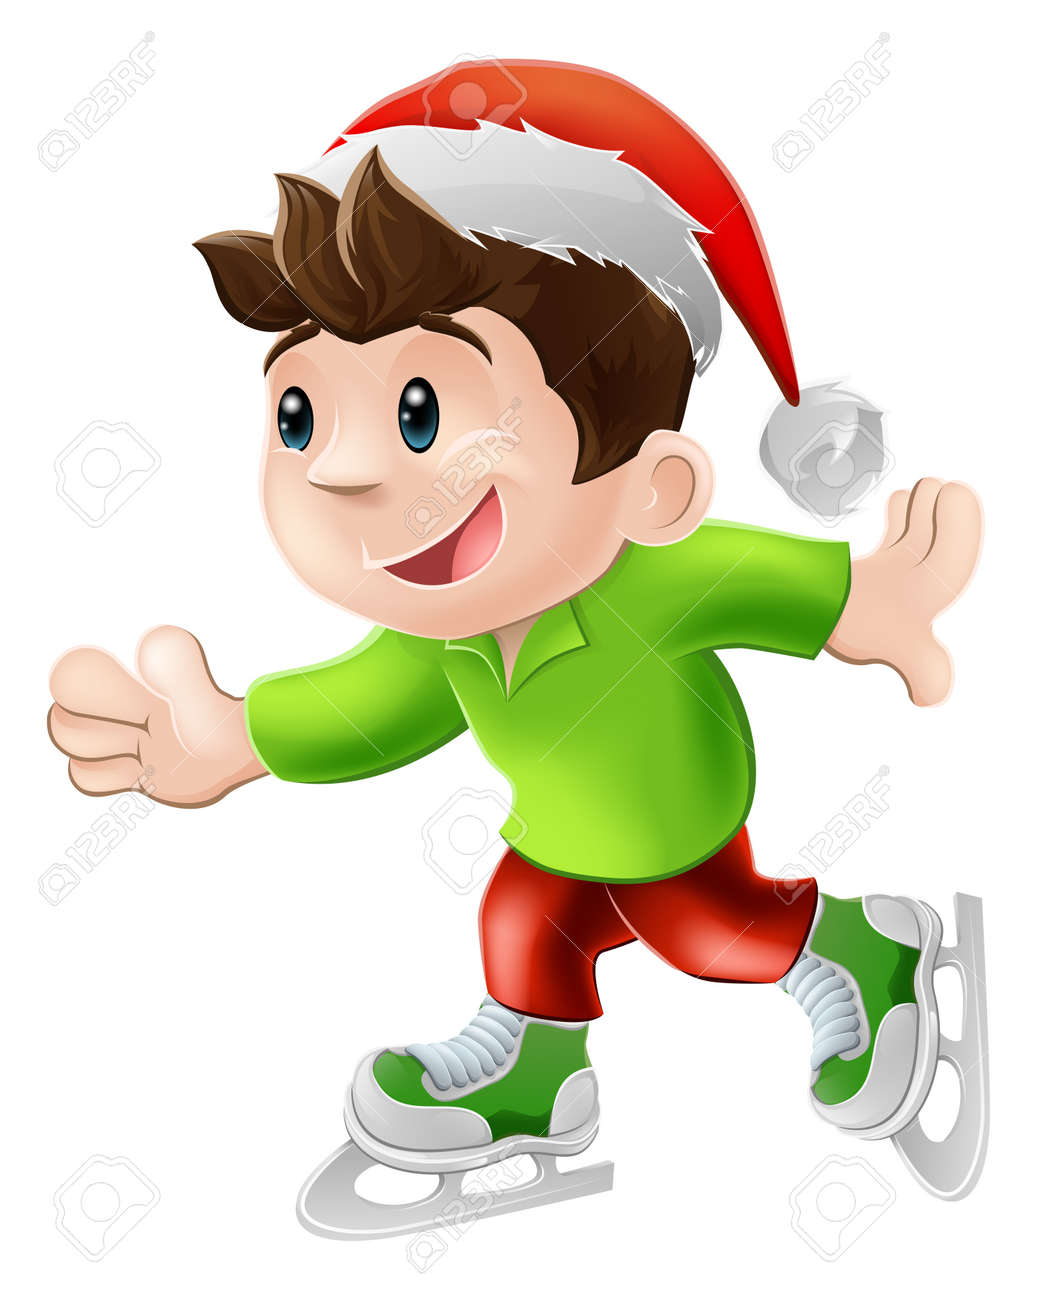 Cartoon illustration of a happy young man or boy having and ice skate in a Christmas Santa hat Stock Vector - 14795230